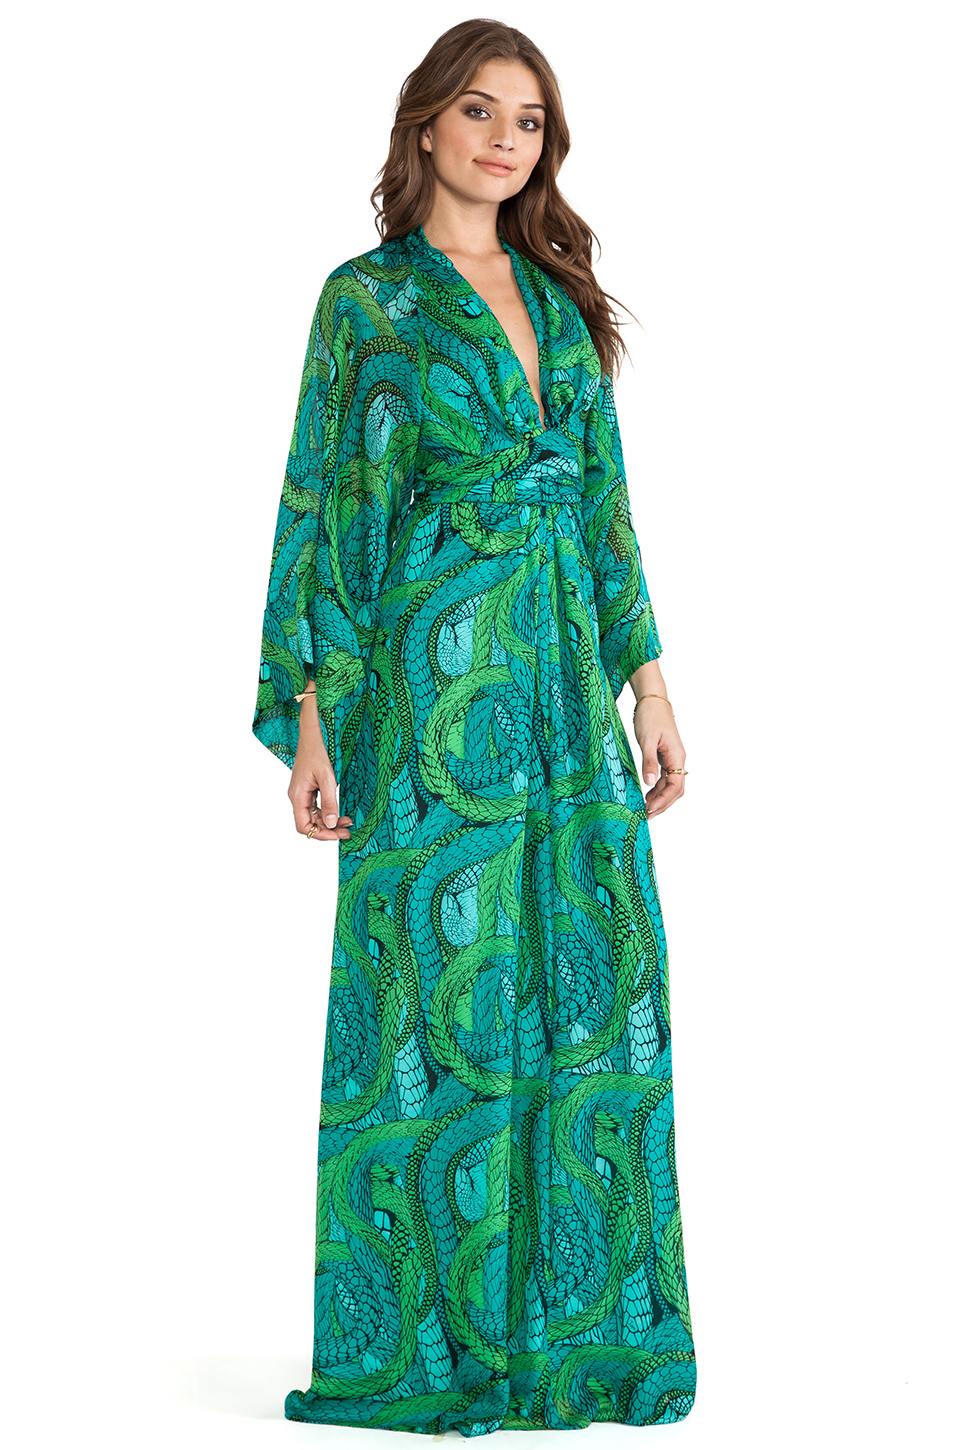 Issa Long Sleeve Printed Maxi Dress in Green | Lyst